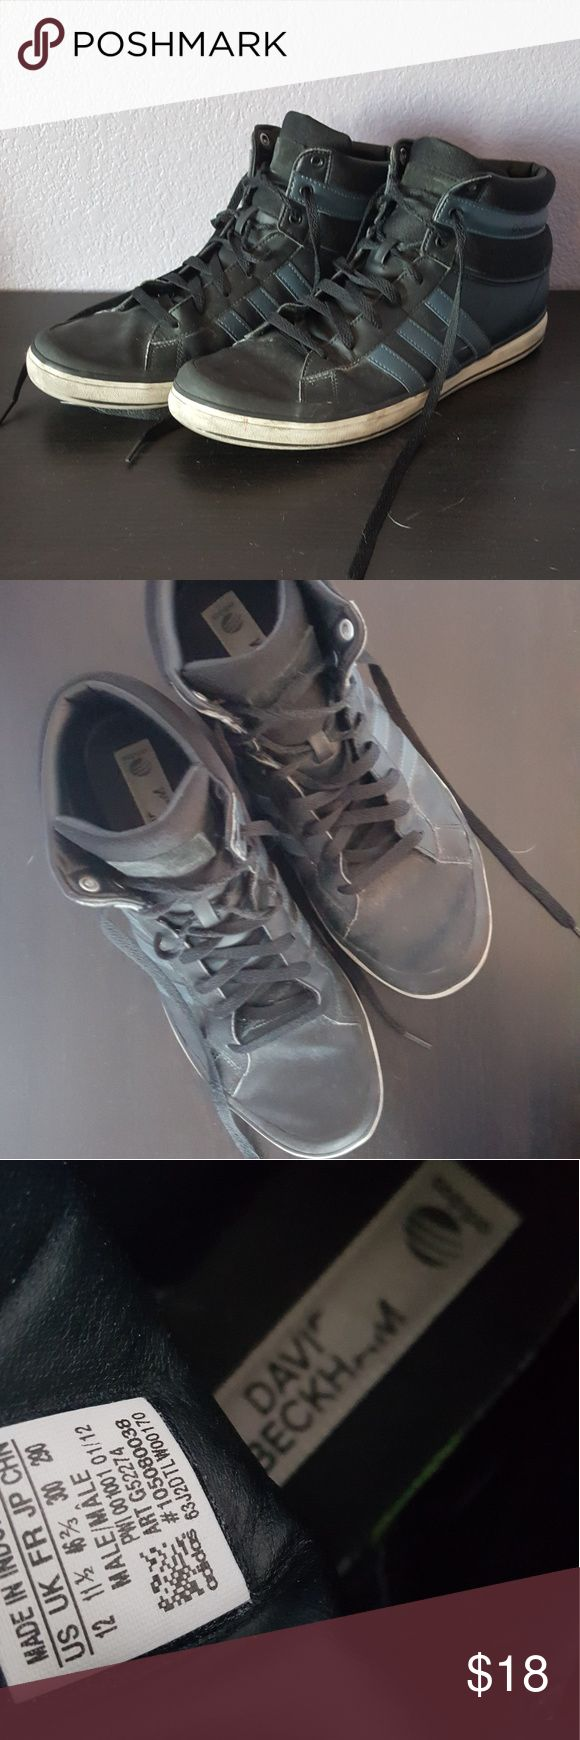 Black David Beckham Adidas Nice used condition Adidas sneakers adidas Shoes Sneakers